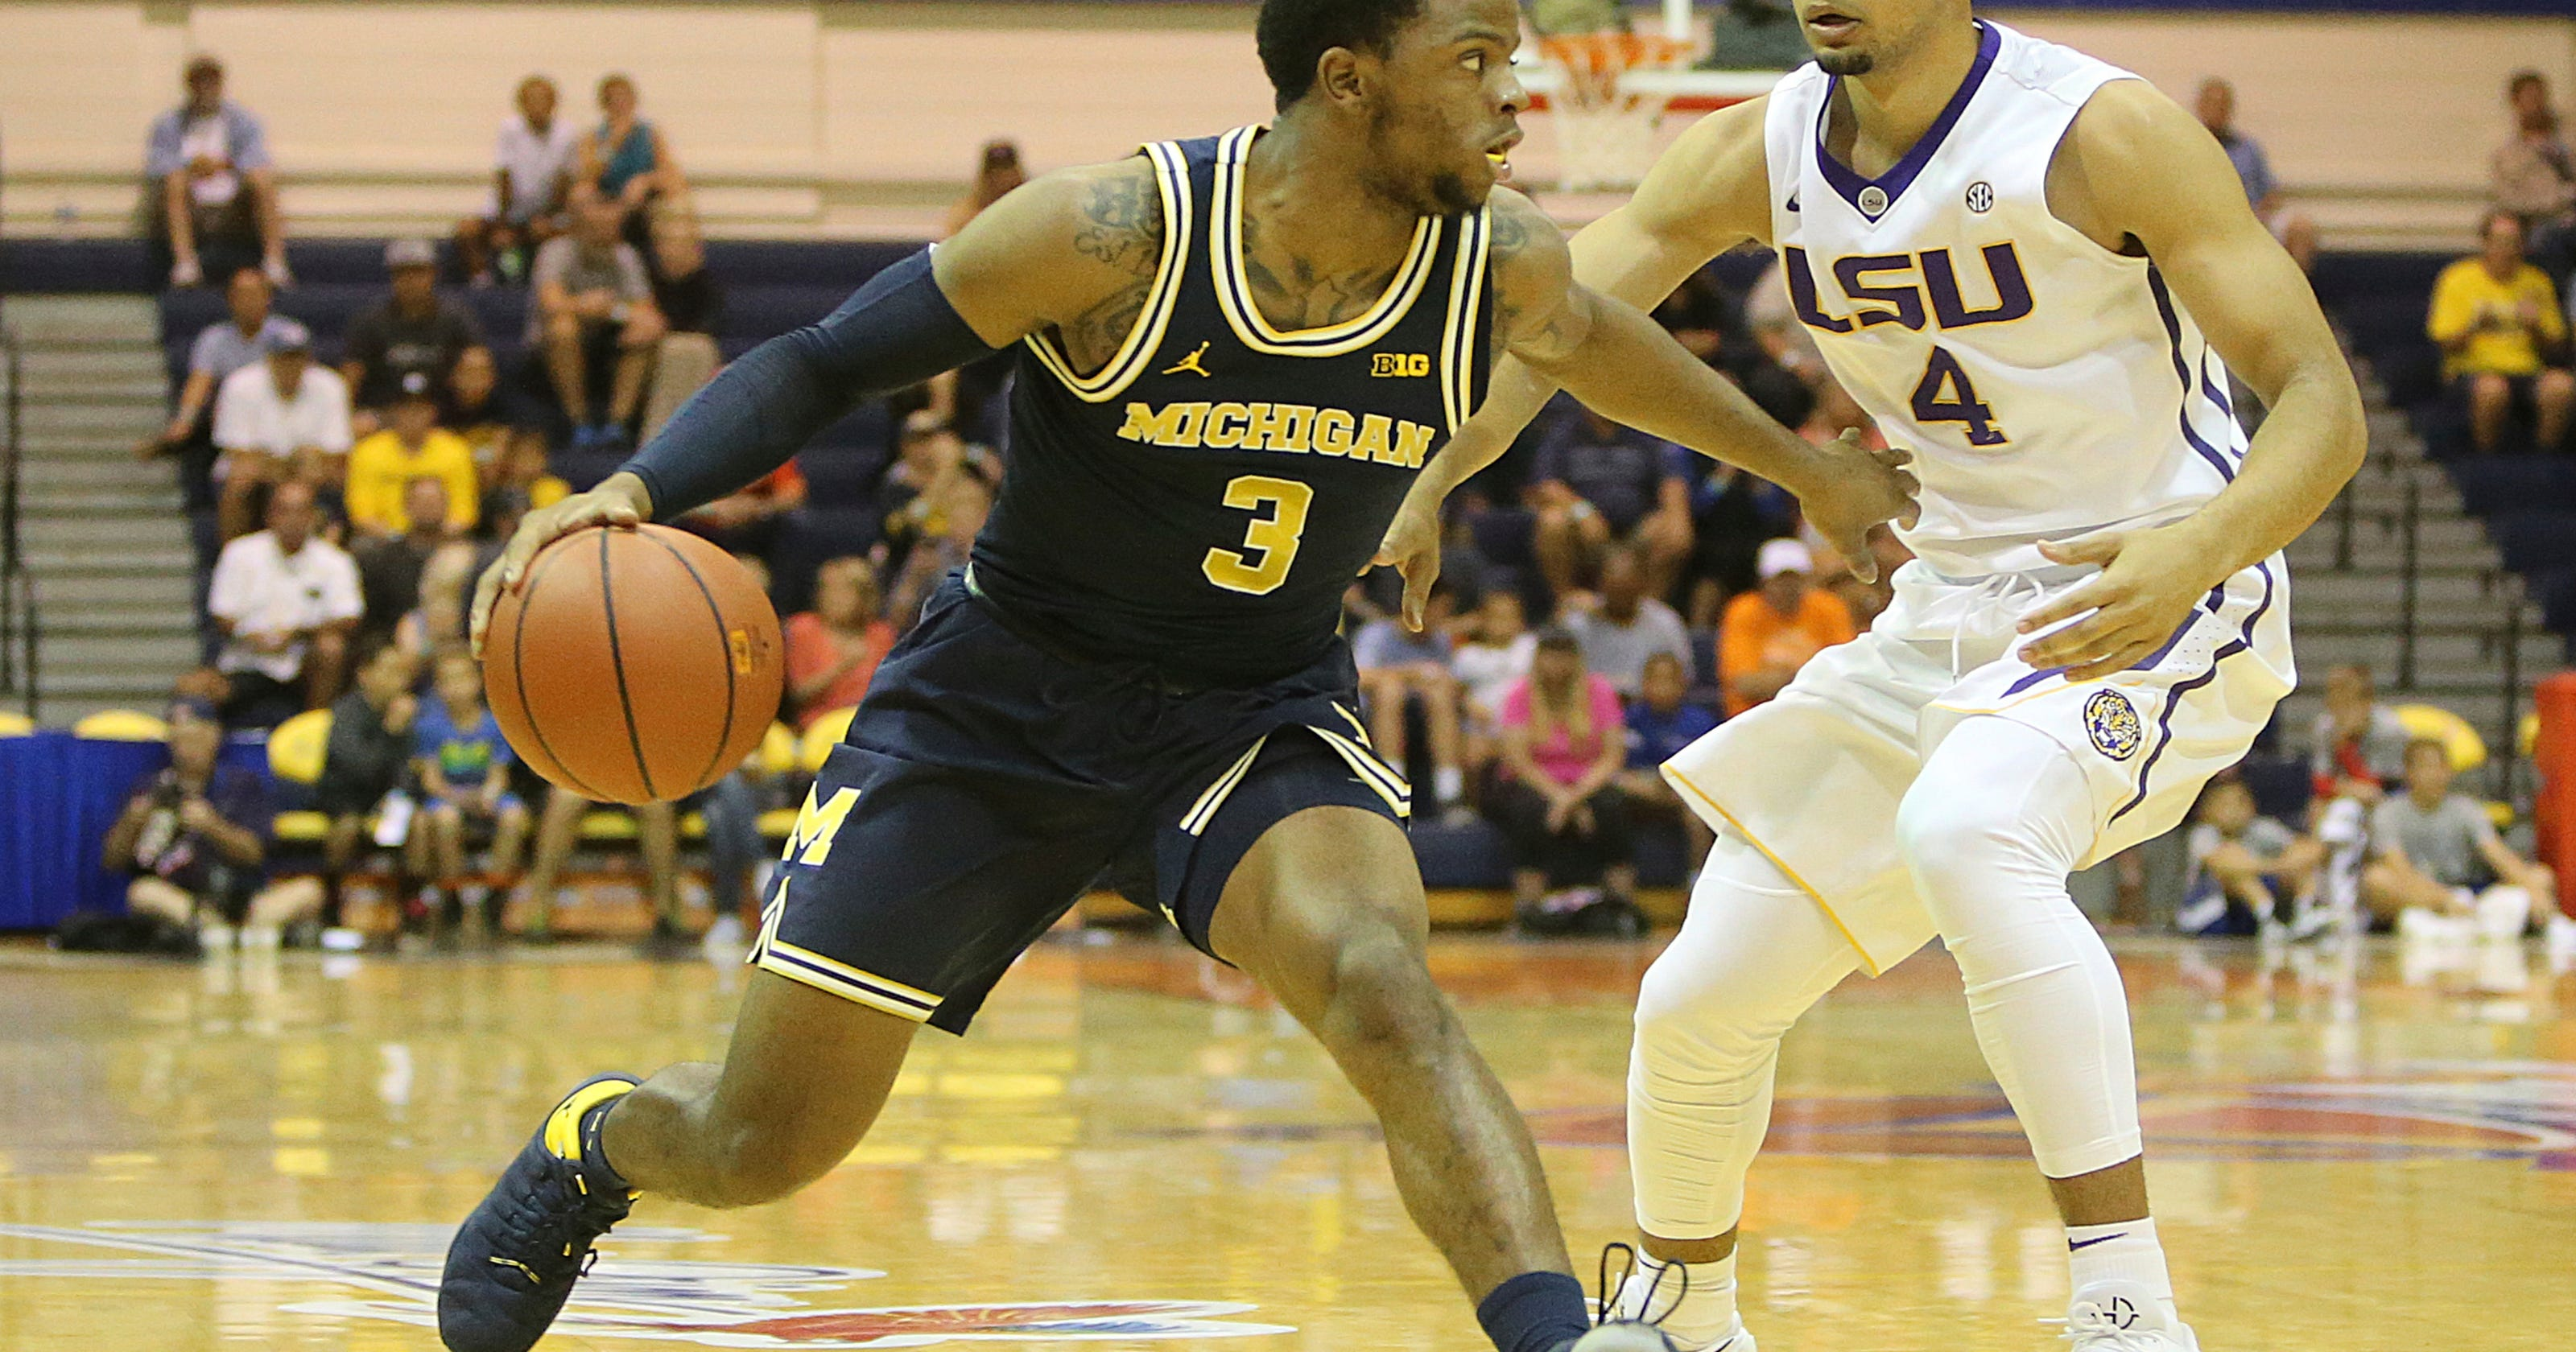 Michigan Wolverines hoops vs. LSU Tigers: Time, TV, radio infomation